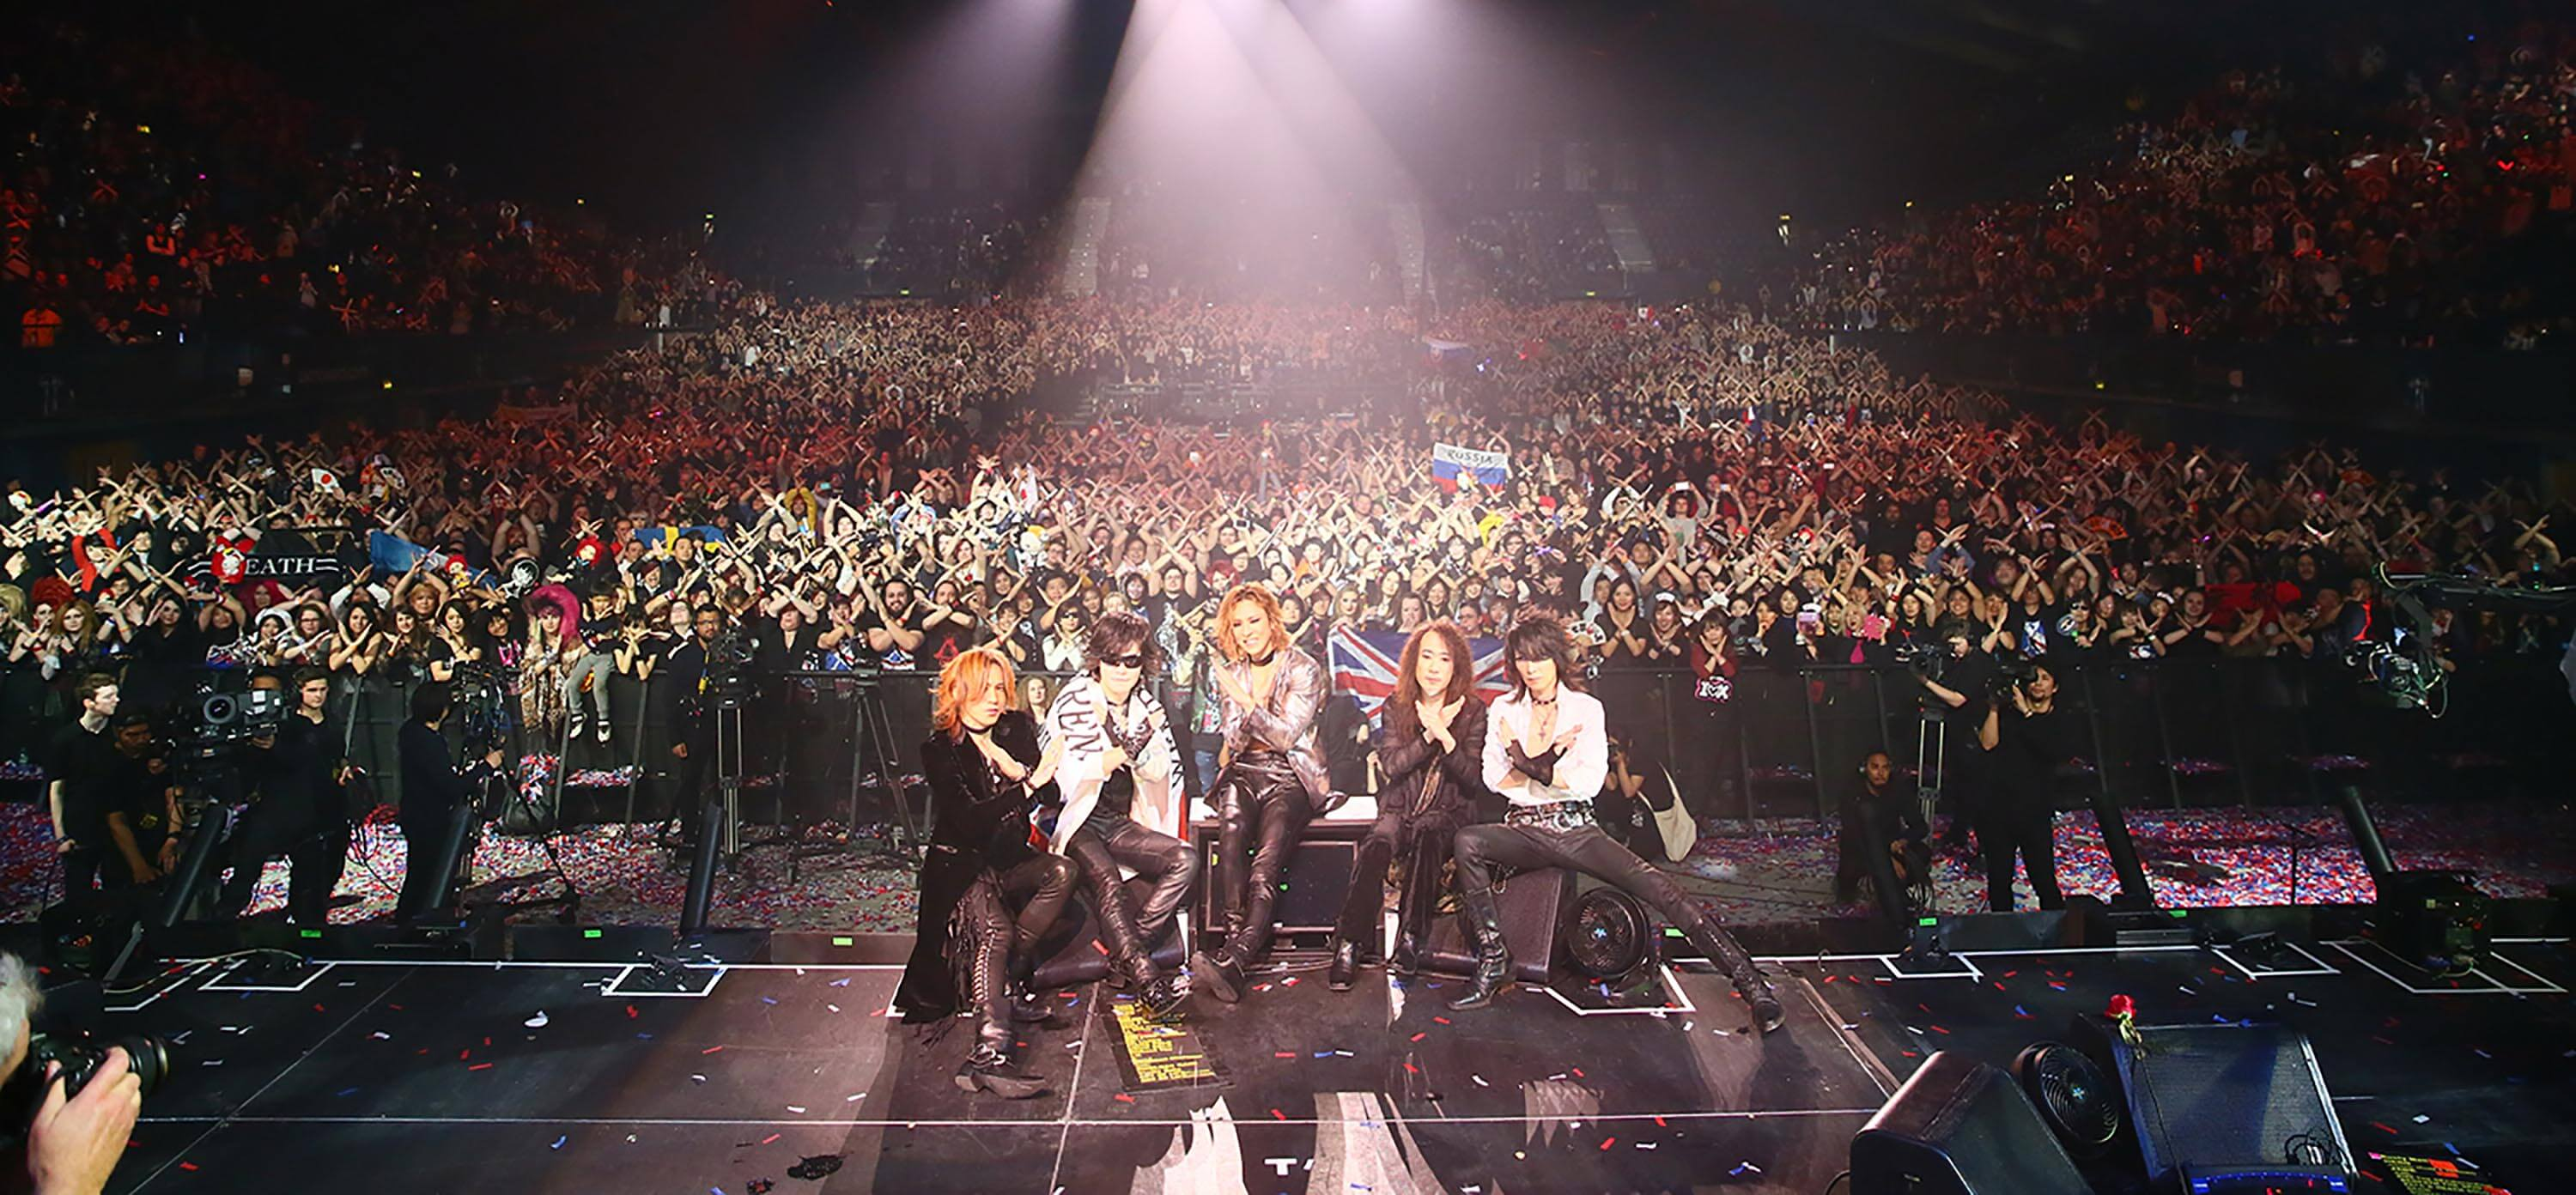 X JAPAN At Wembley Arena 2017 in London, England